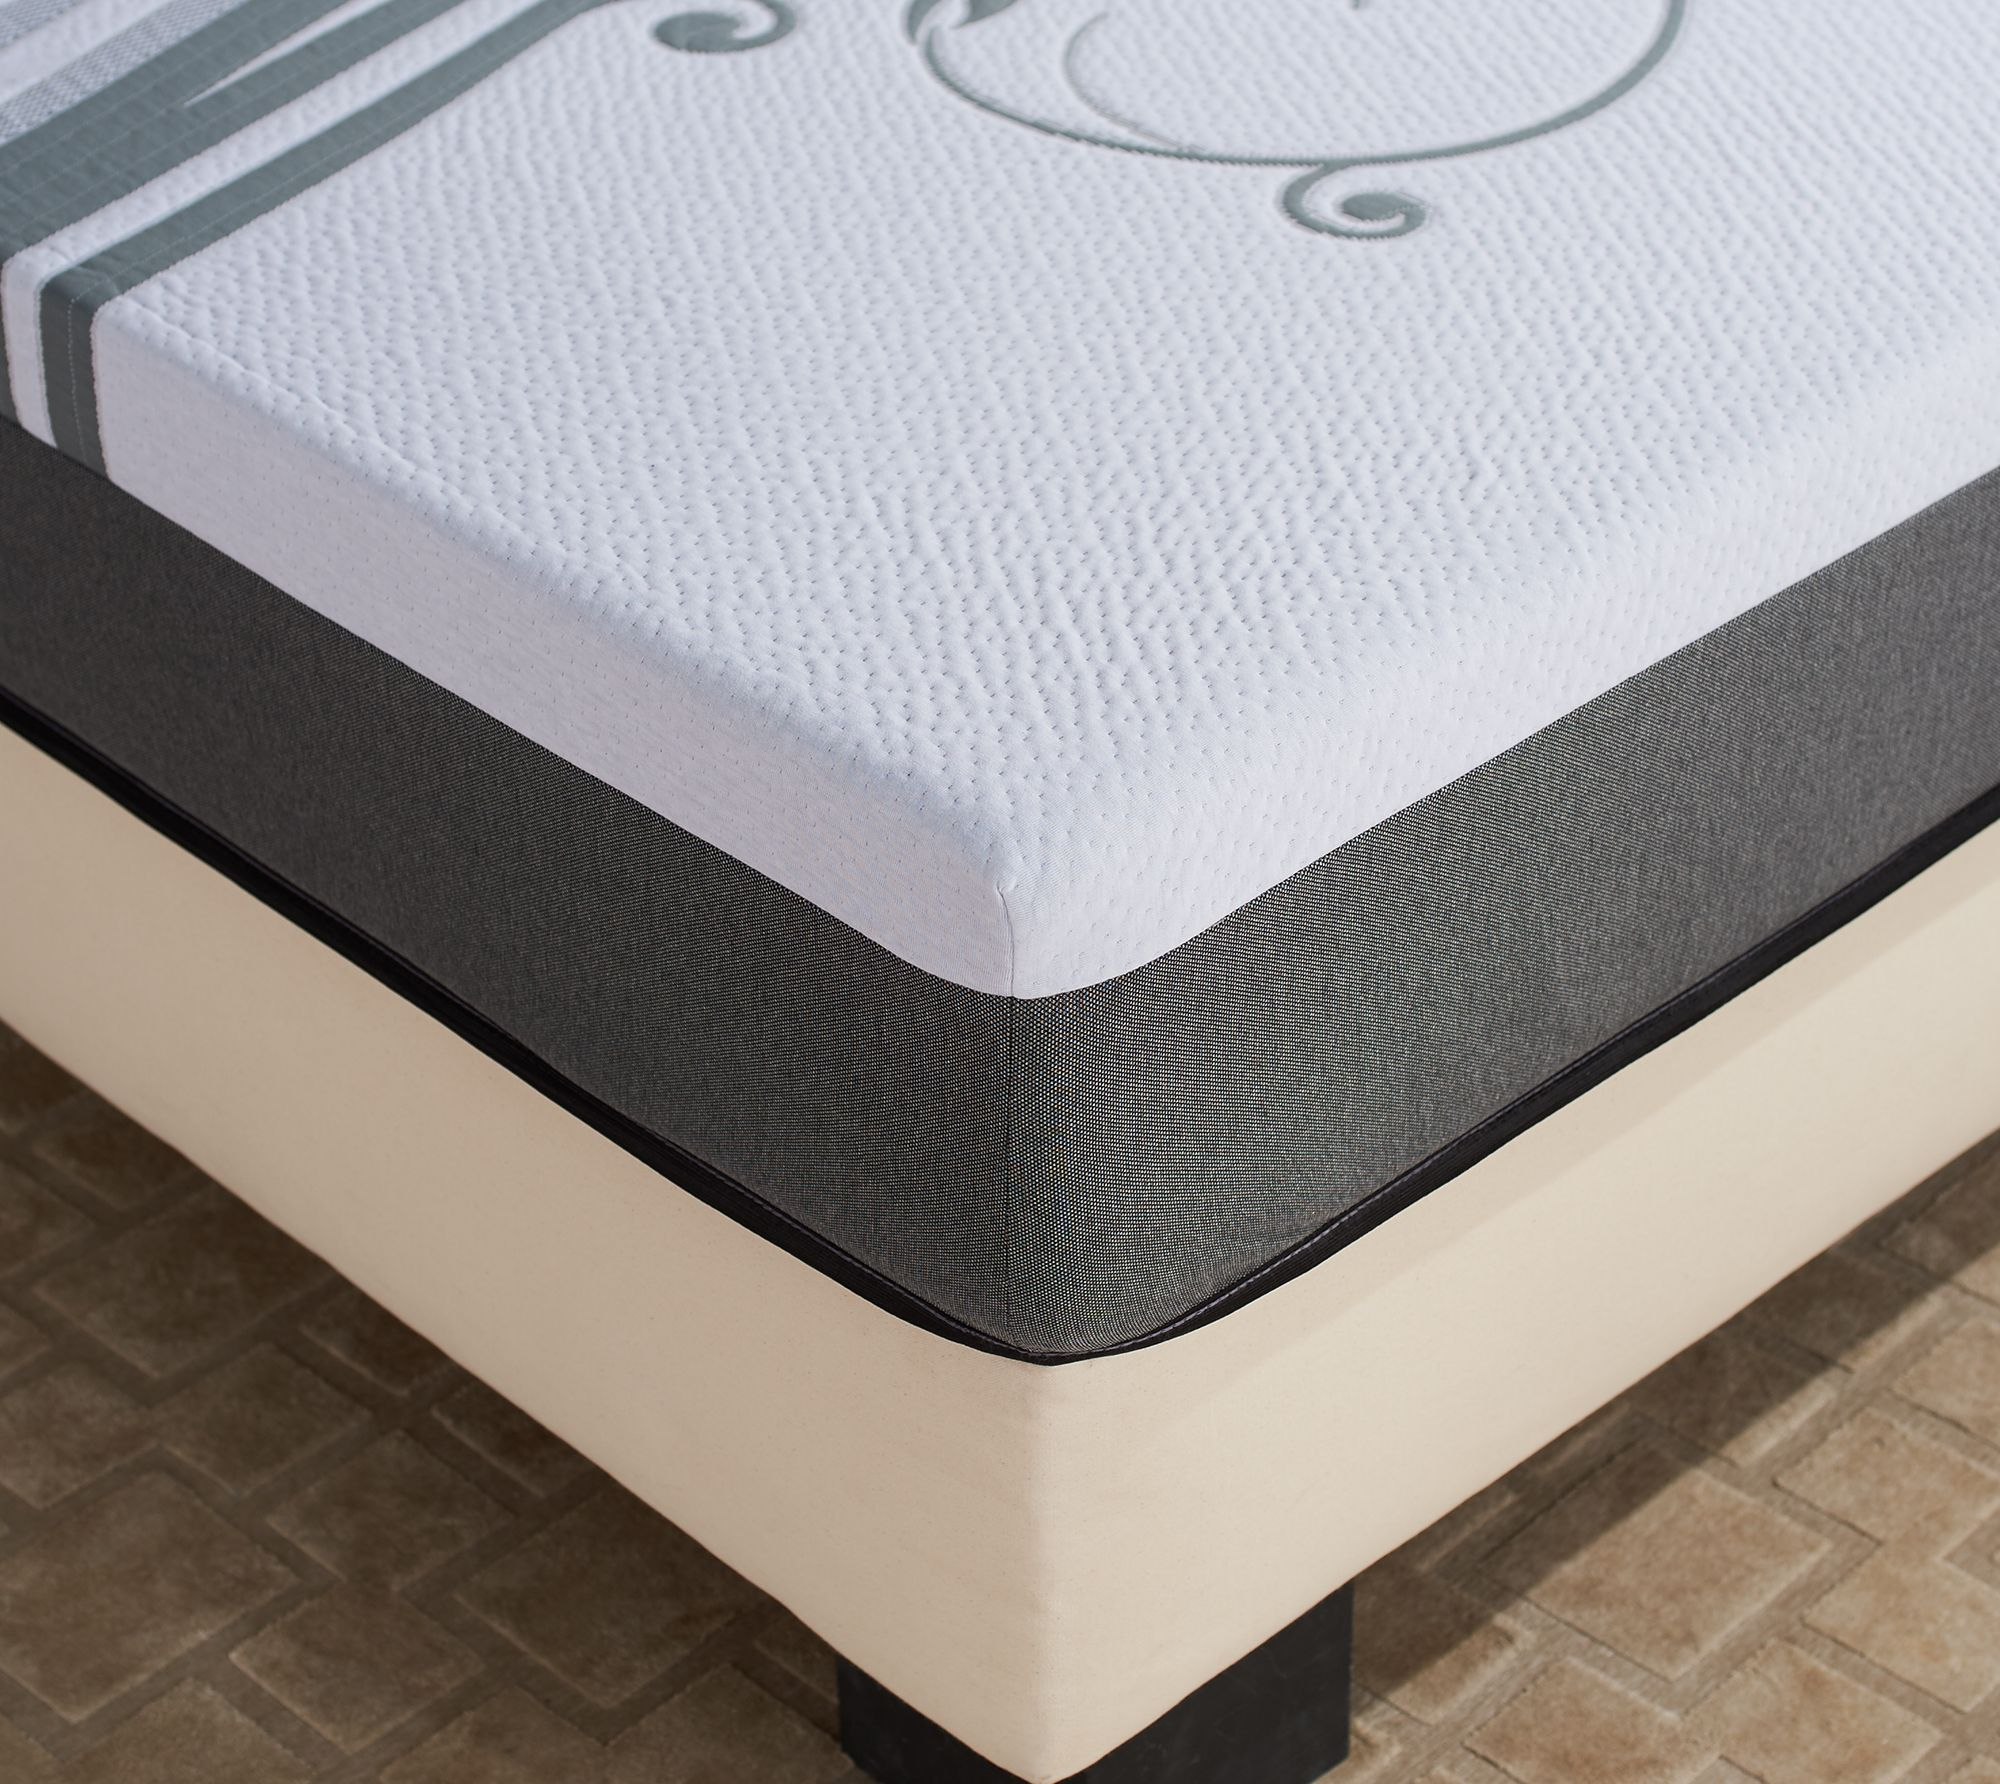 king adjustable bed split joplimo sheets double mattress beds stores symbol product bamboo new original for bs